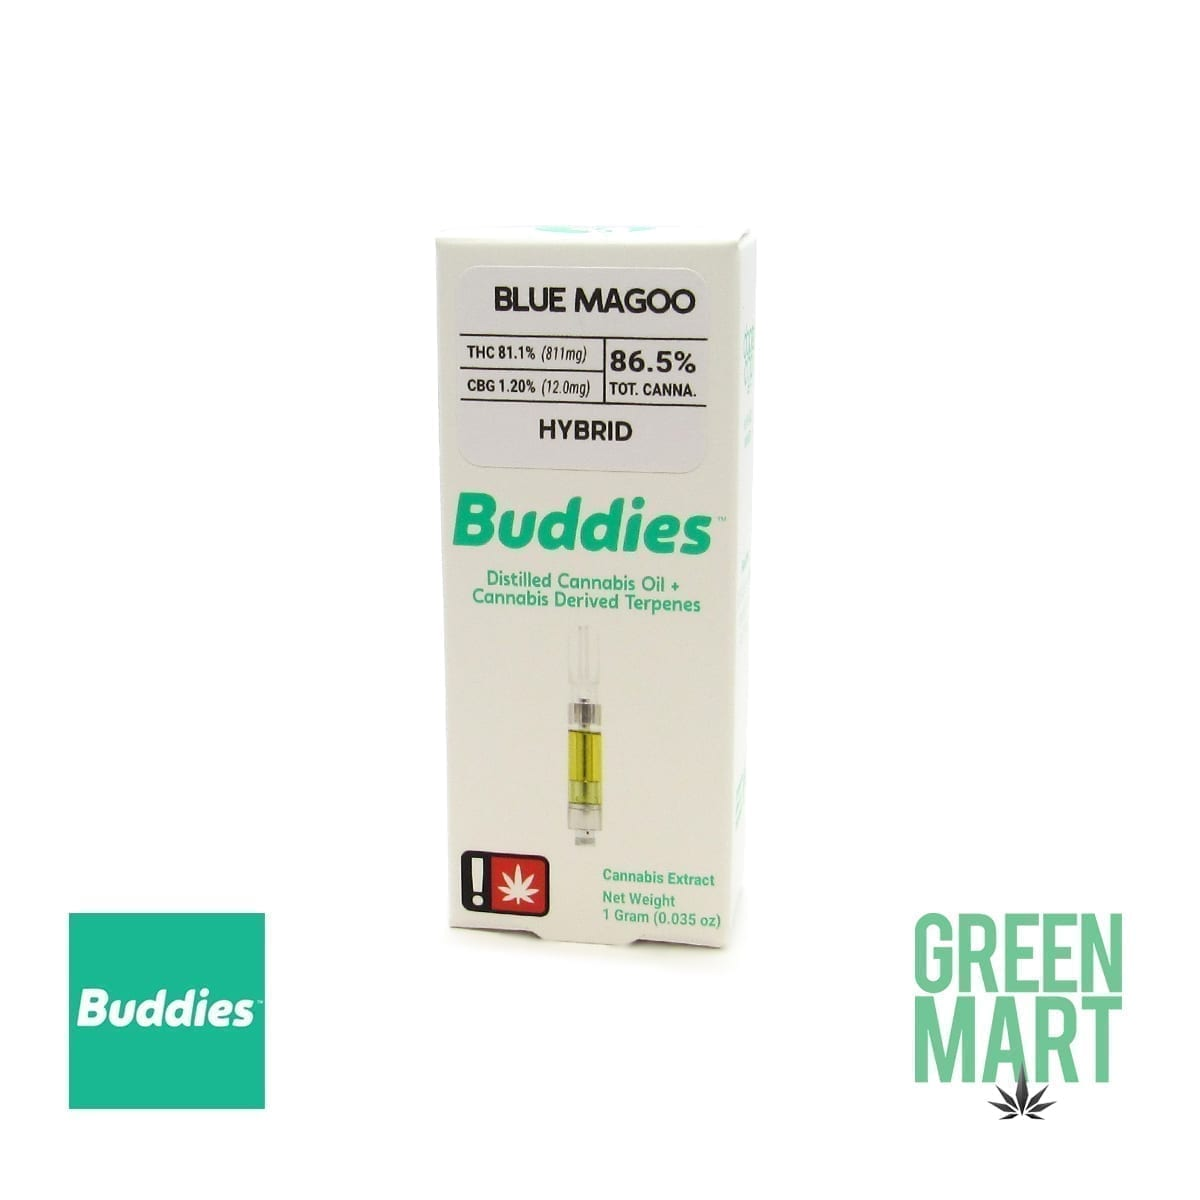 Buddies Brand Distillate Cartridge - Blue Magoo